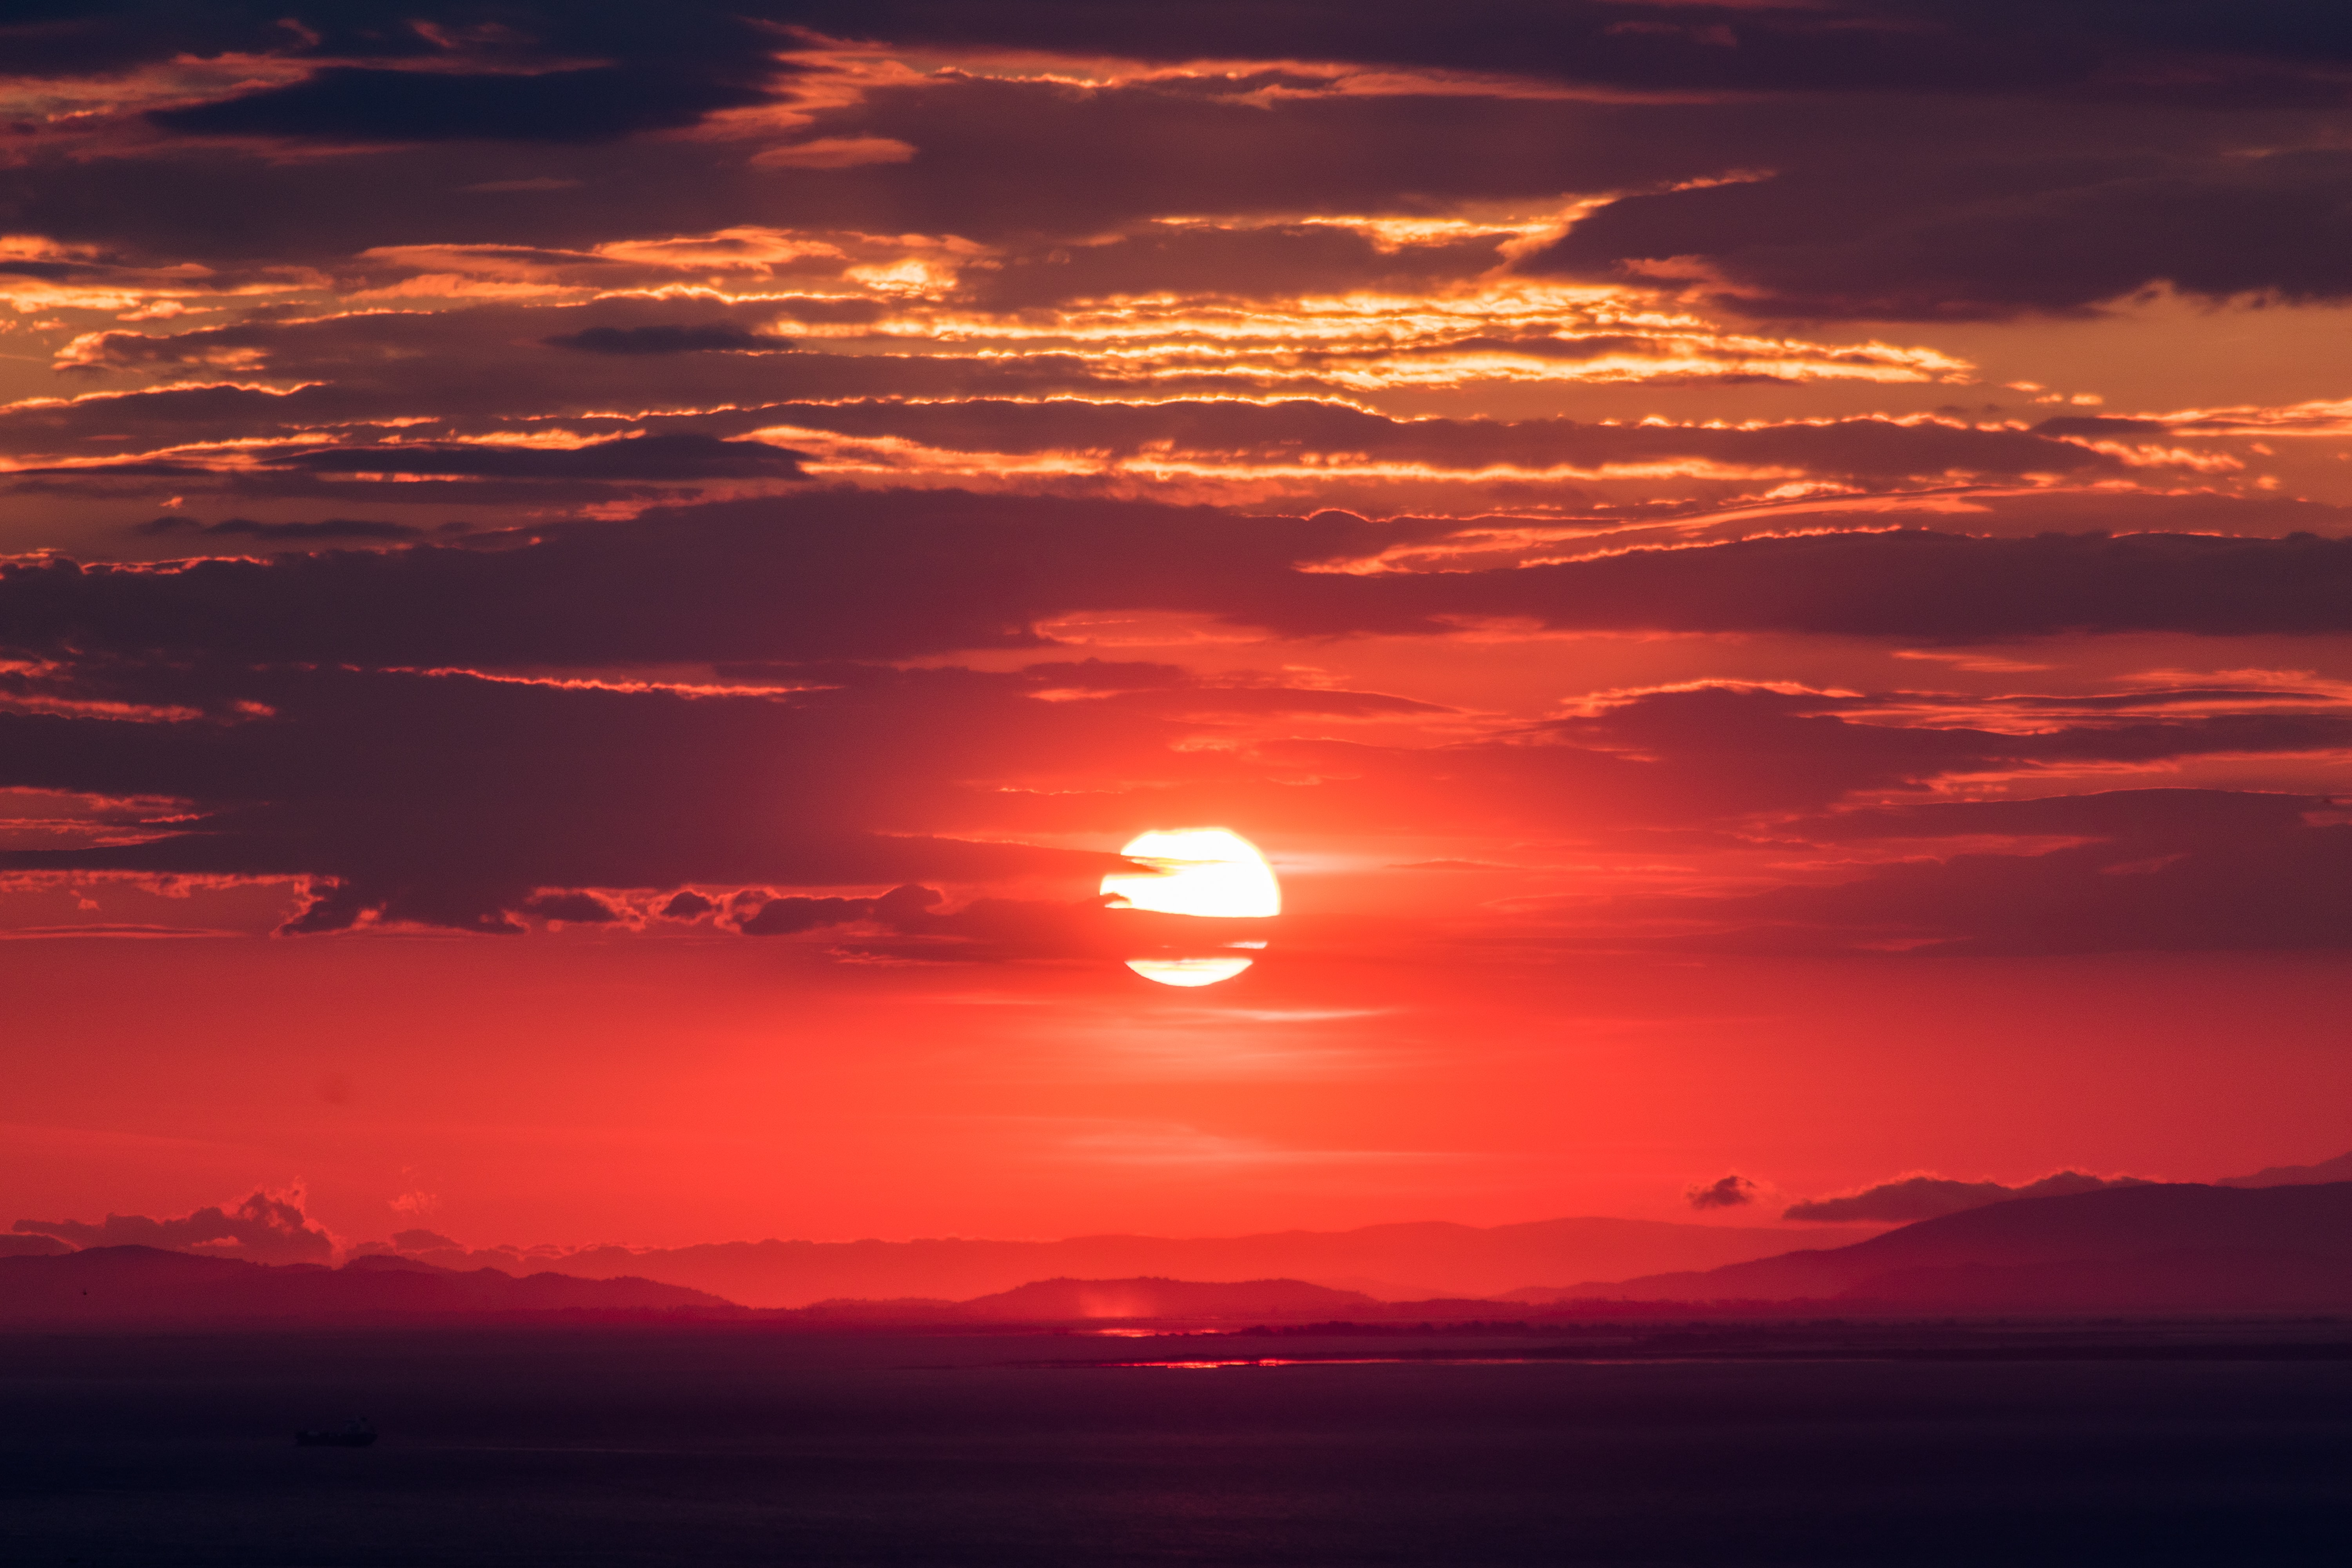 900 Sunset Images Download Hd Pictures Photos On Unsplash